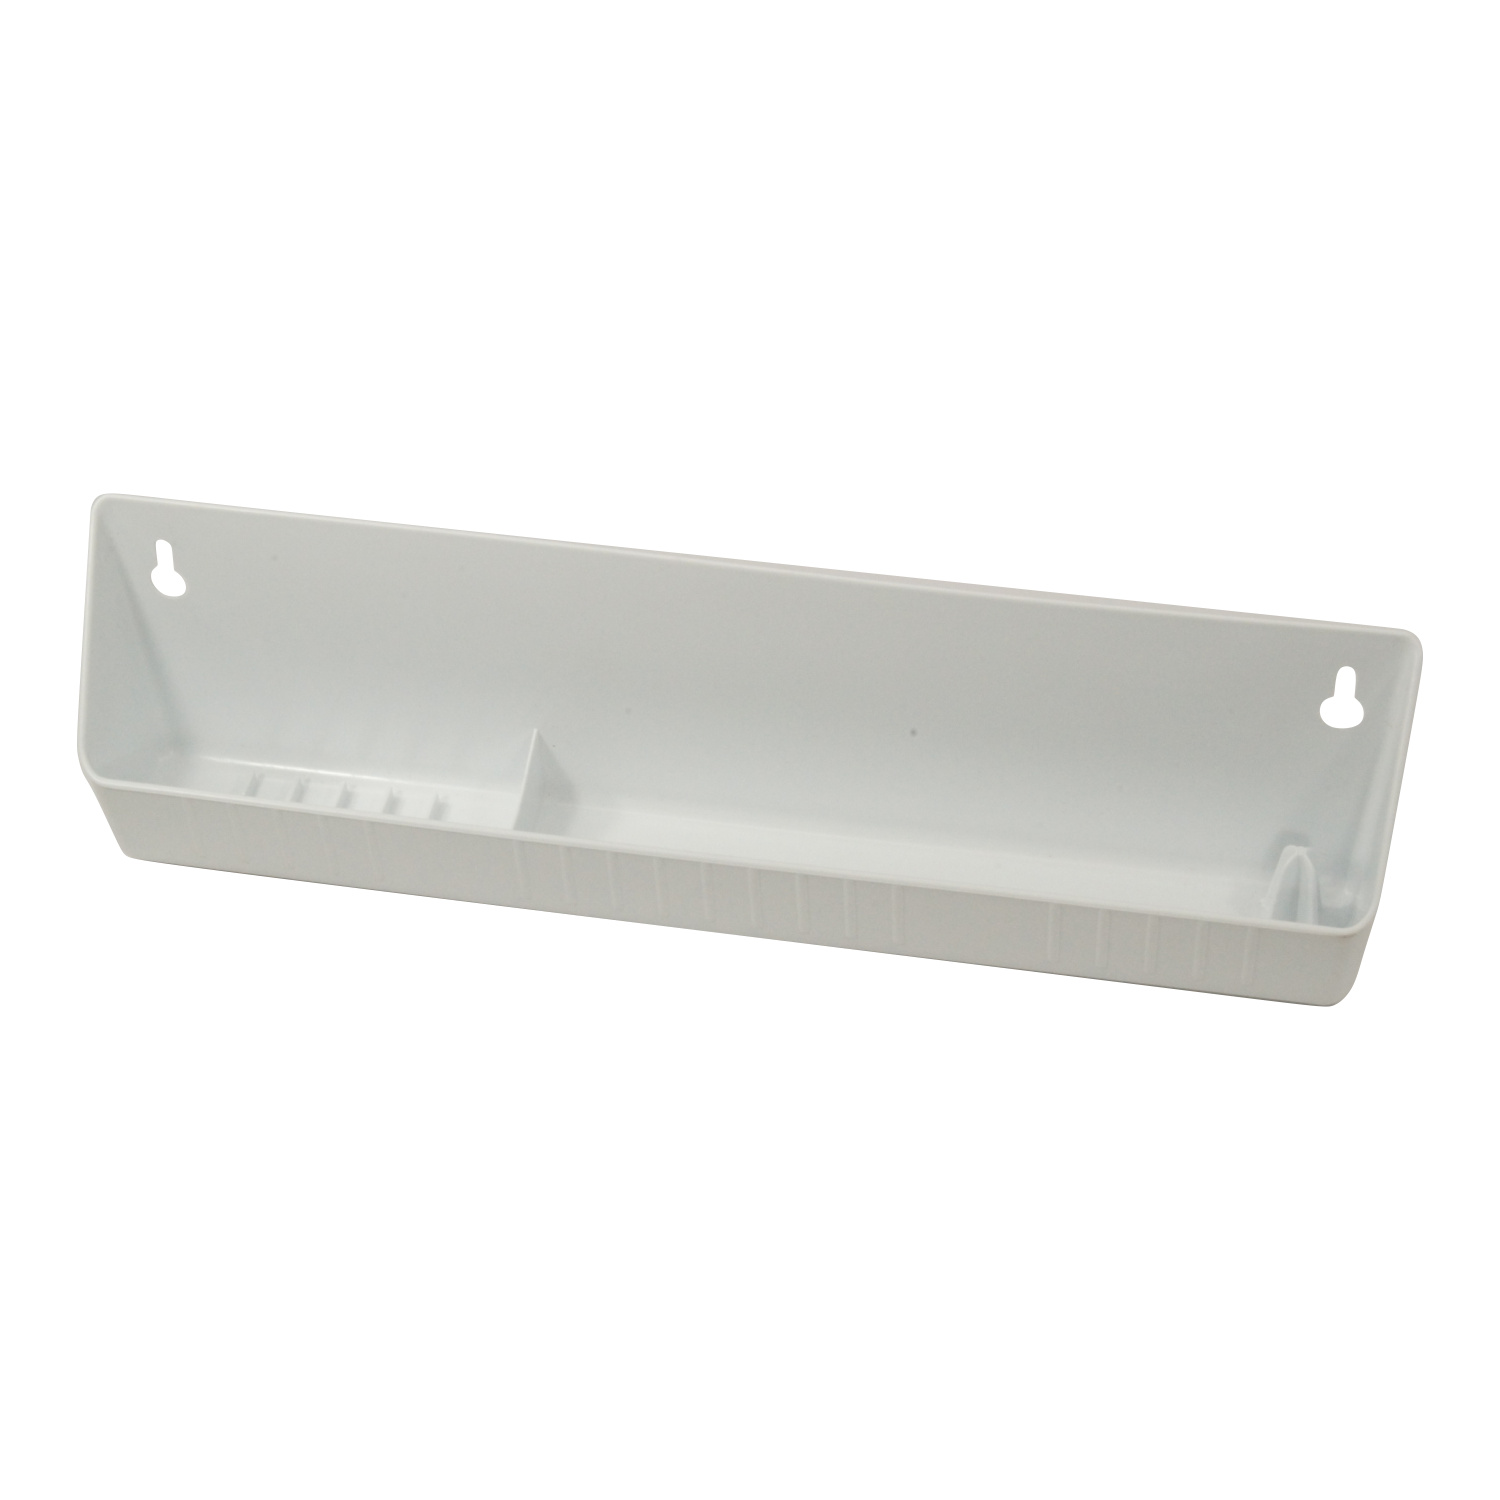 rev a shelf sink front tip out accessory tray 14 white 6591 series